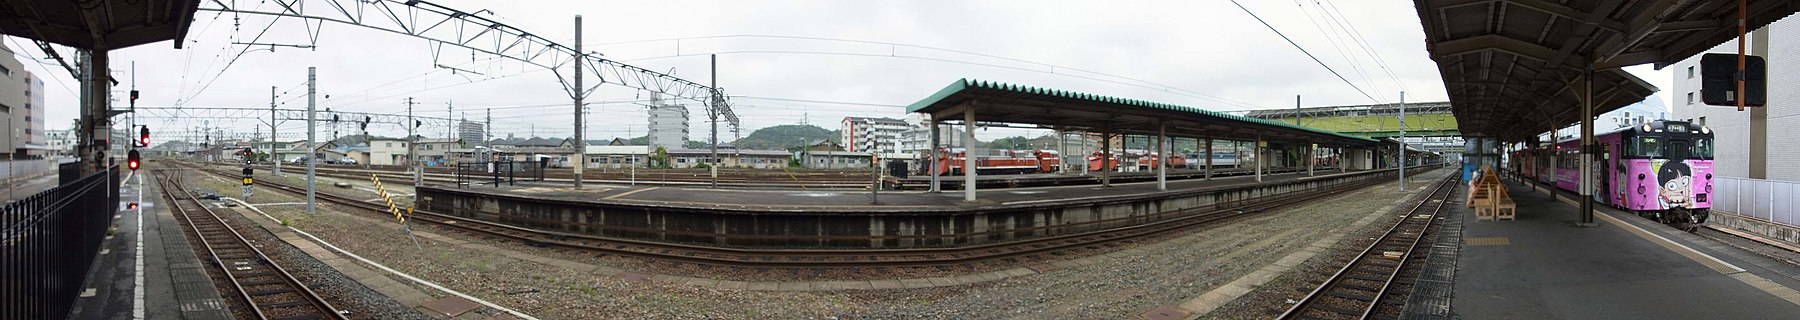 JR Yonago station , JR 米子駅 - panoramio (5).jpg